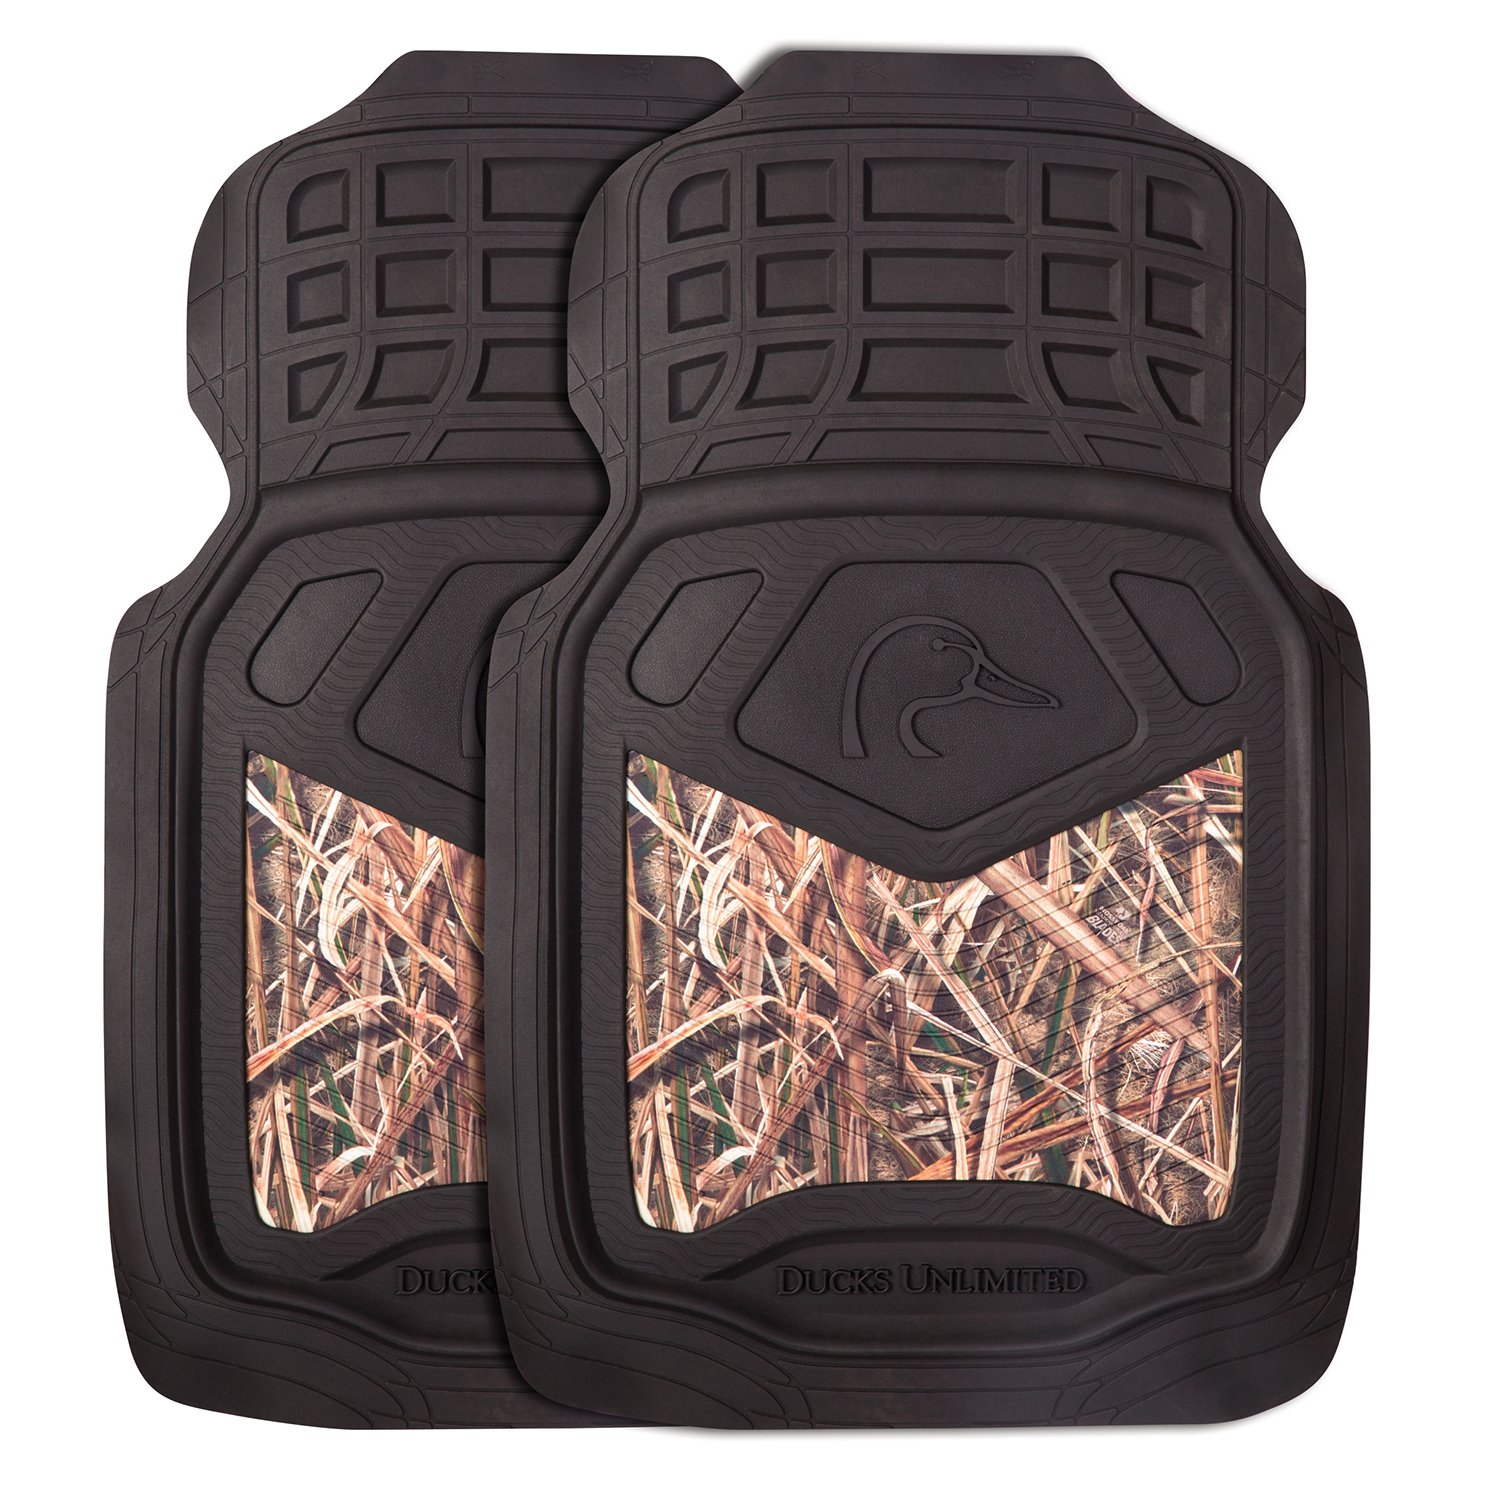 Ducks Unlimited Camo Floor Mats | Front | DU Shadow Grass Blades | 2 Pack Signature Products Group